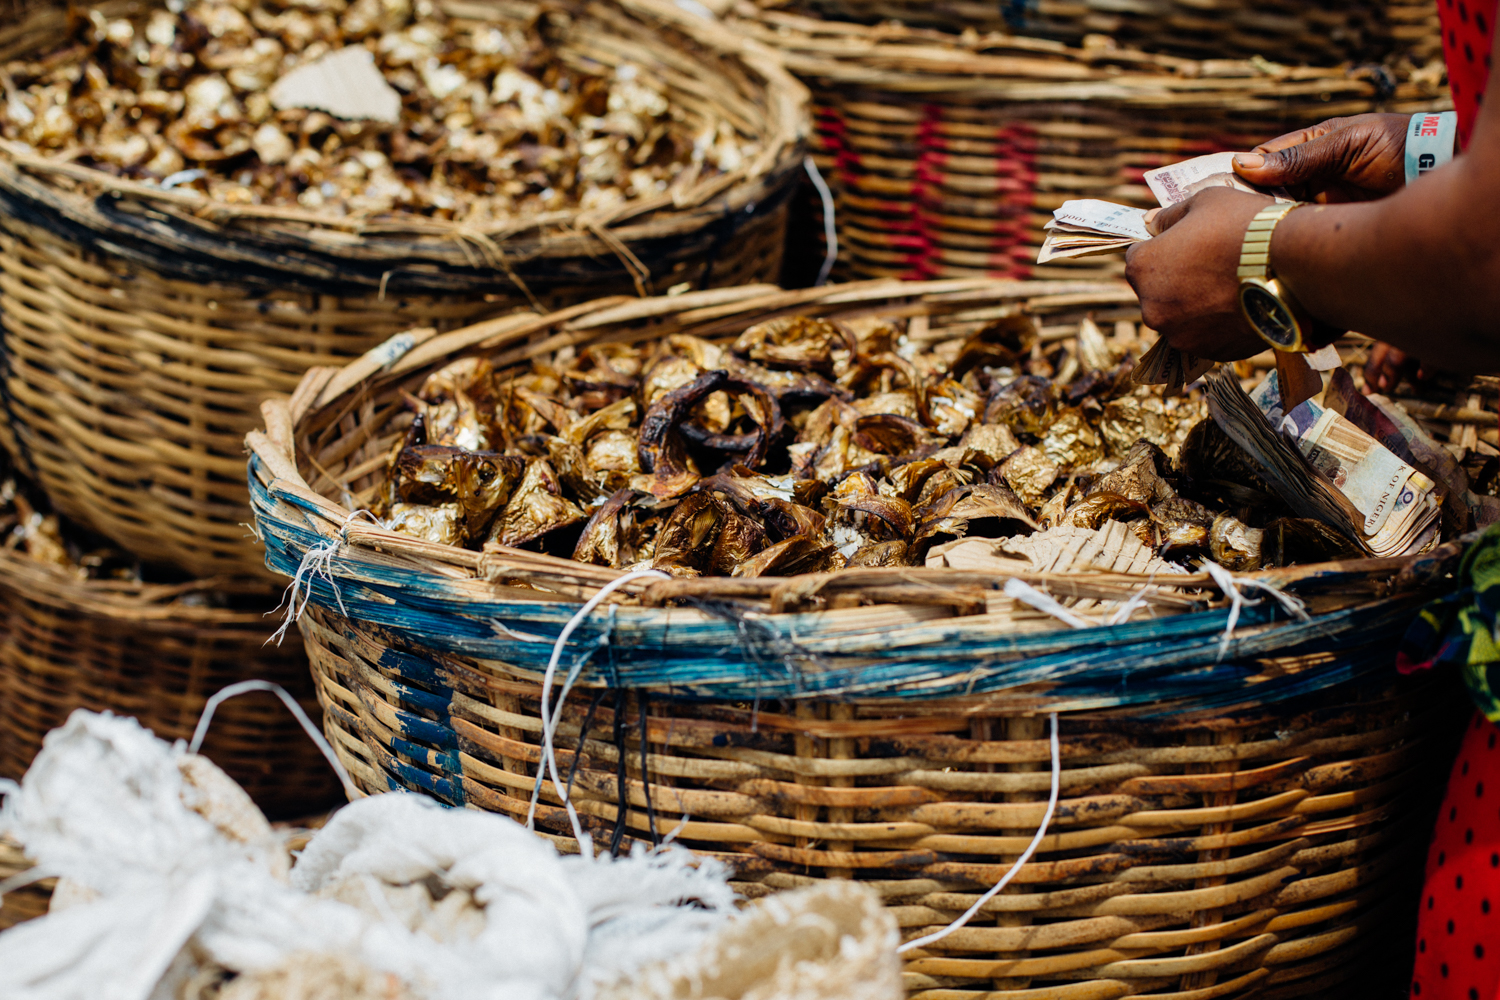 Dry fish in baskets and a trader counting money, Koko